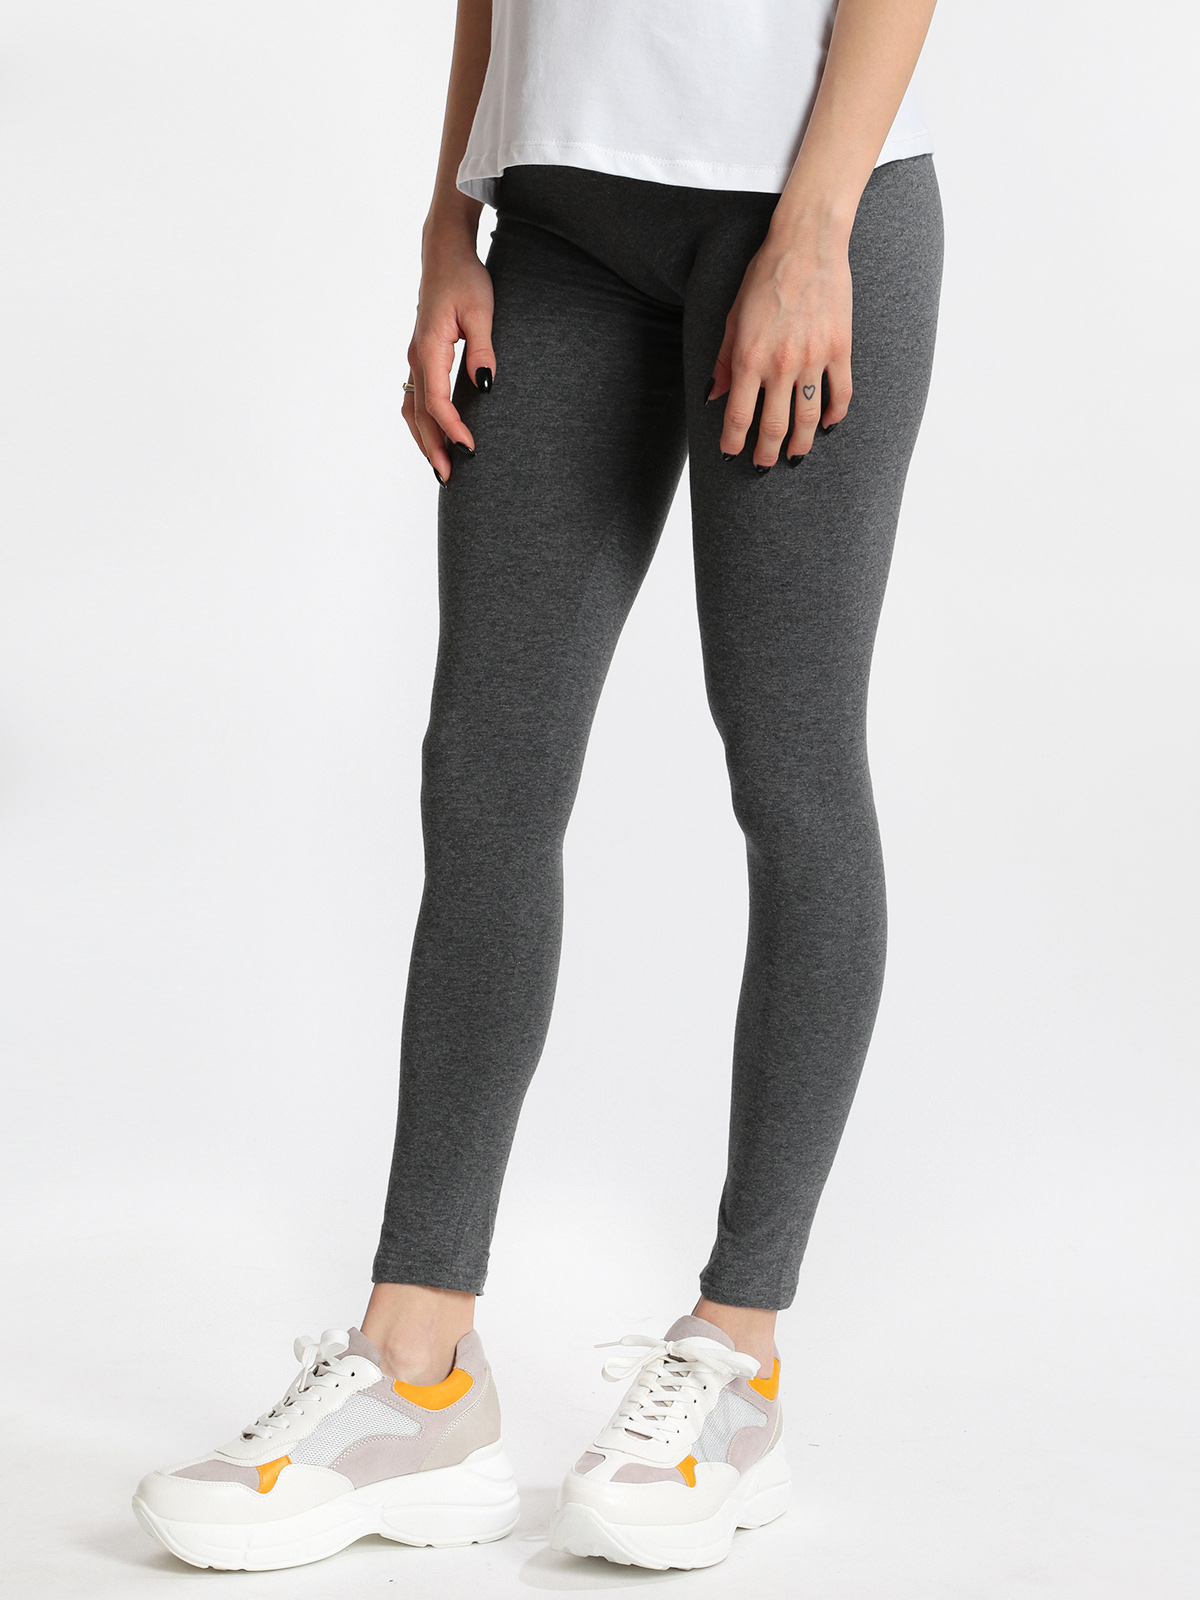 Gray Leggings Cotton